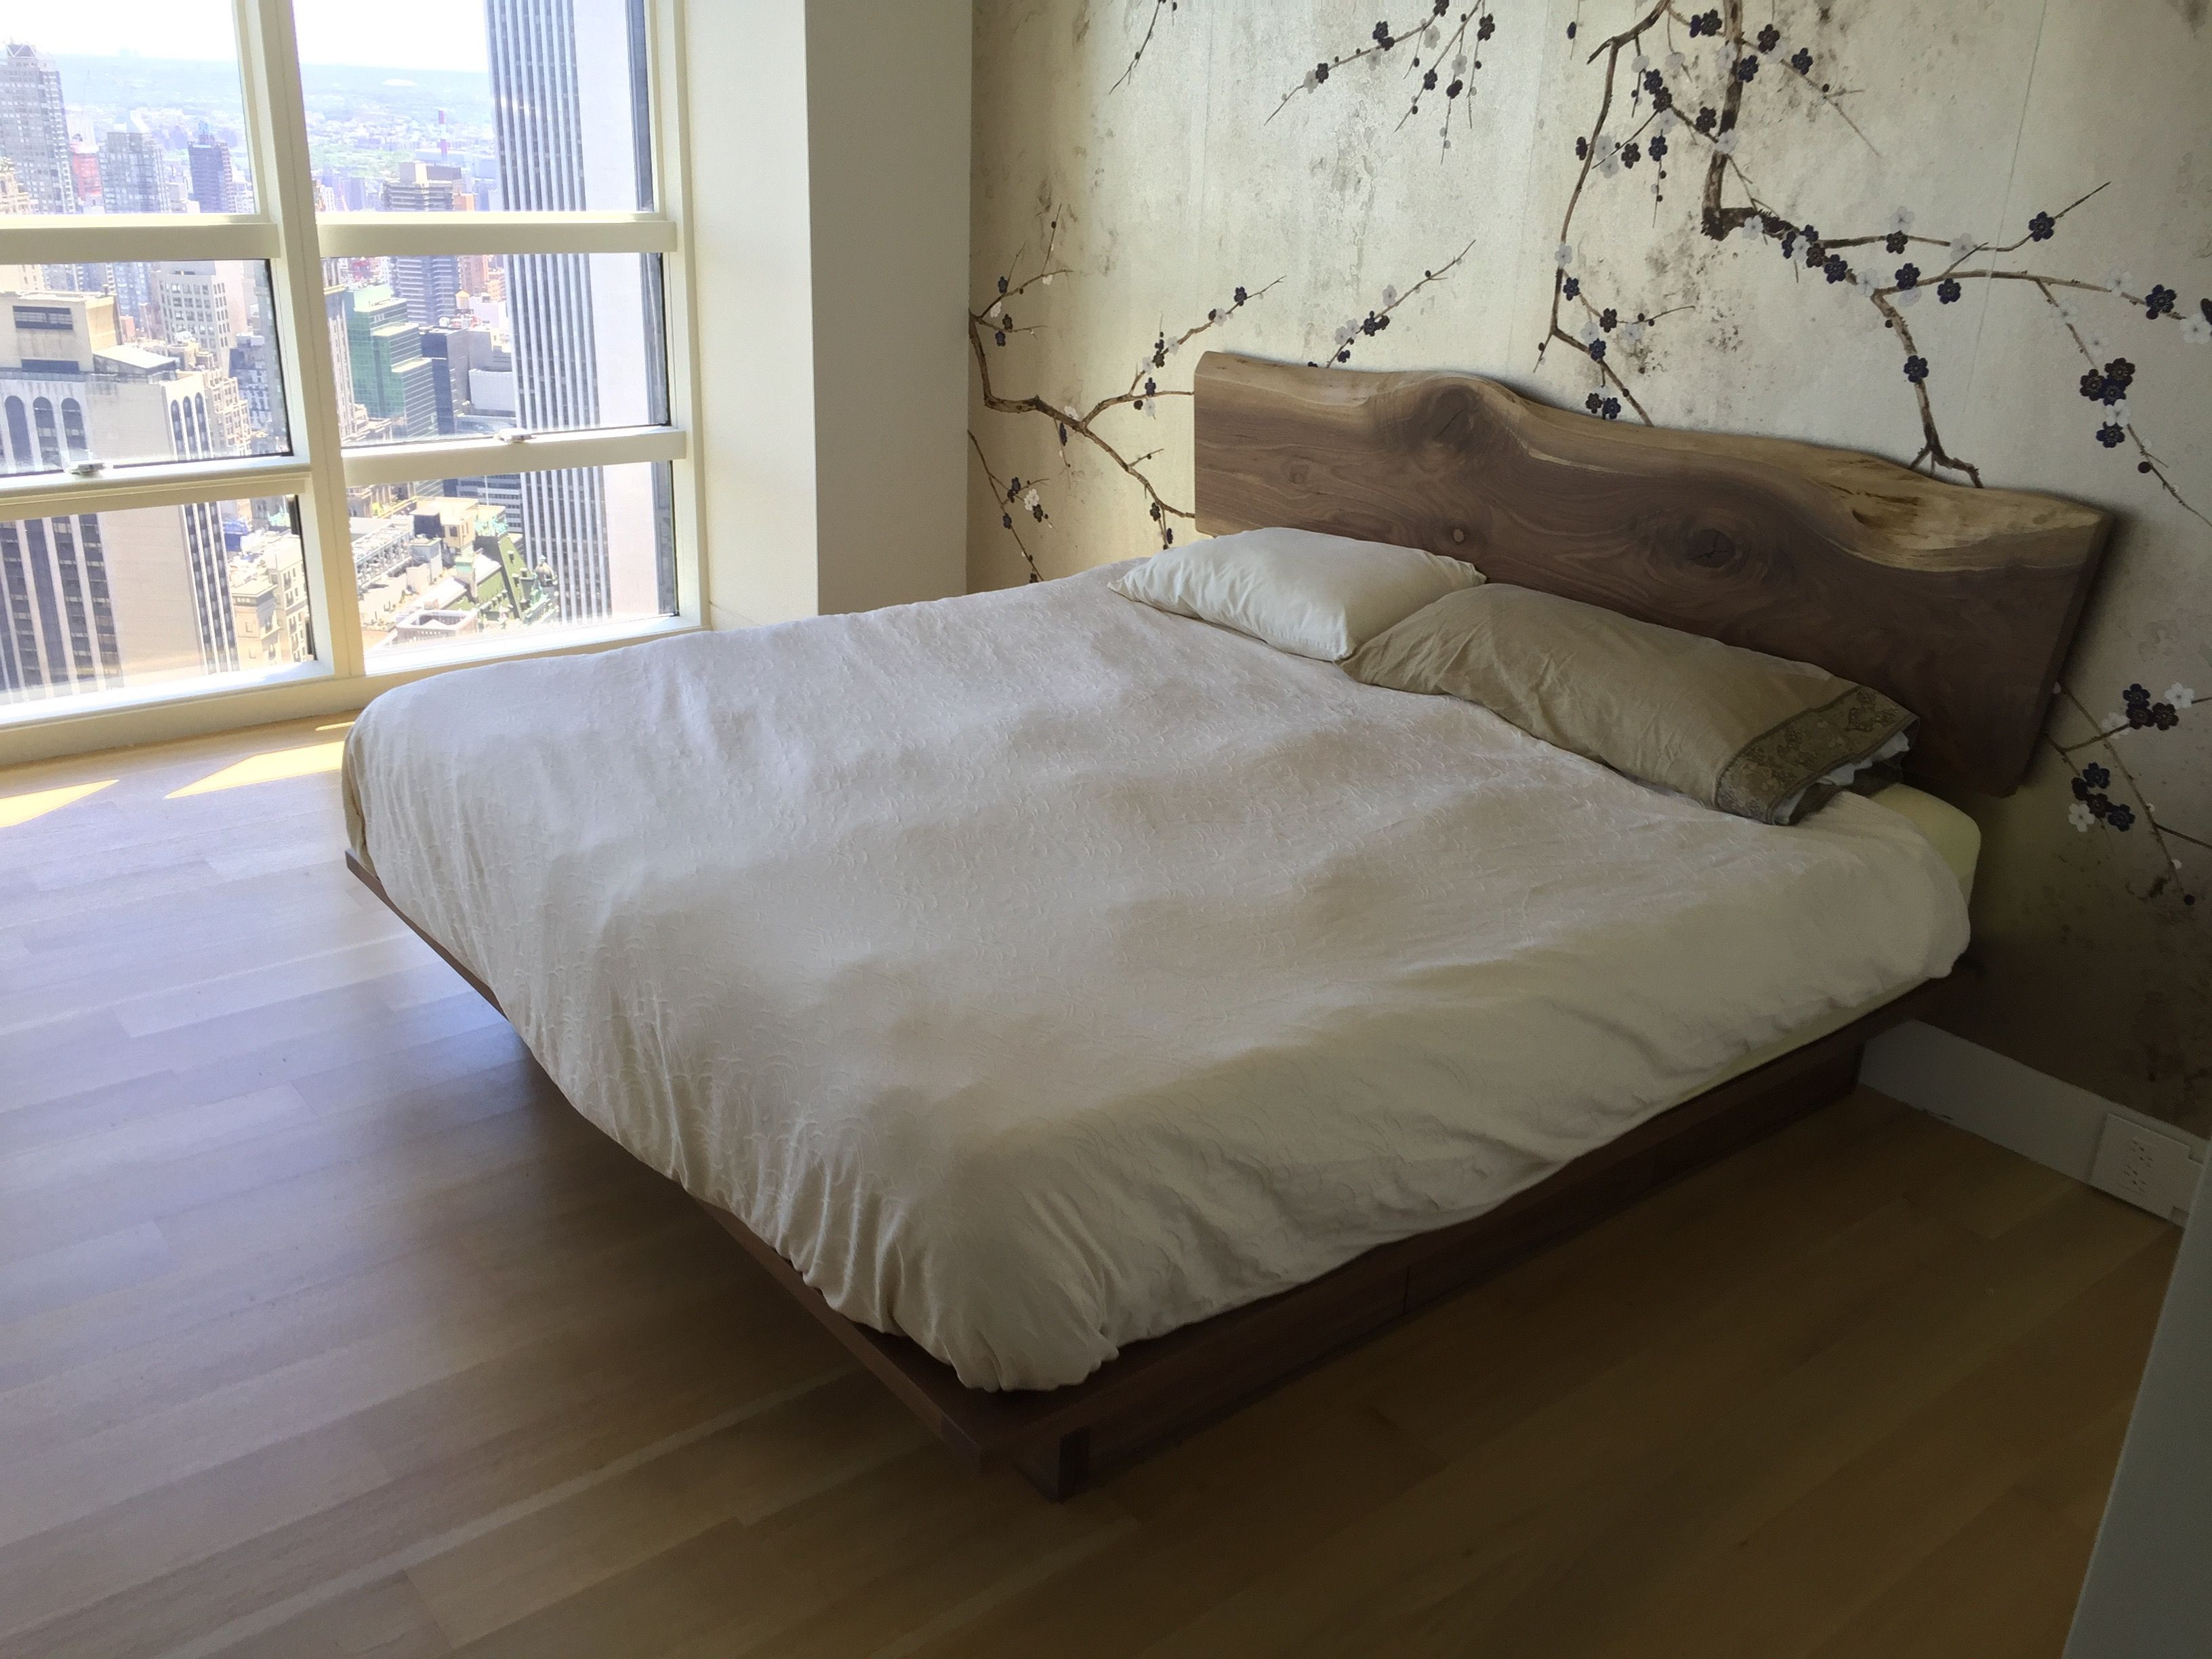 Buy A Custom Walnut Platform Bed With A Natural Edge Walnut Headboard And Storage Made To